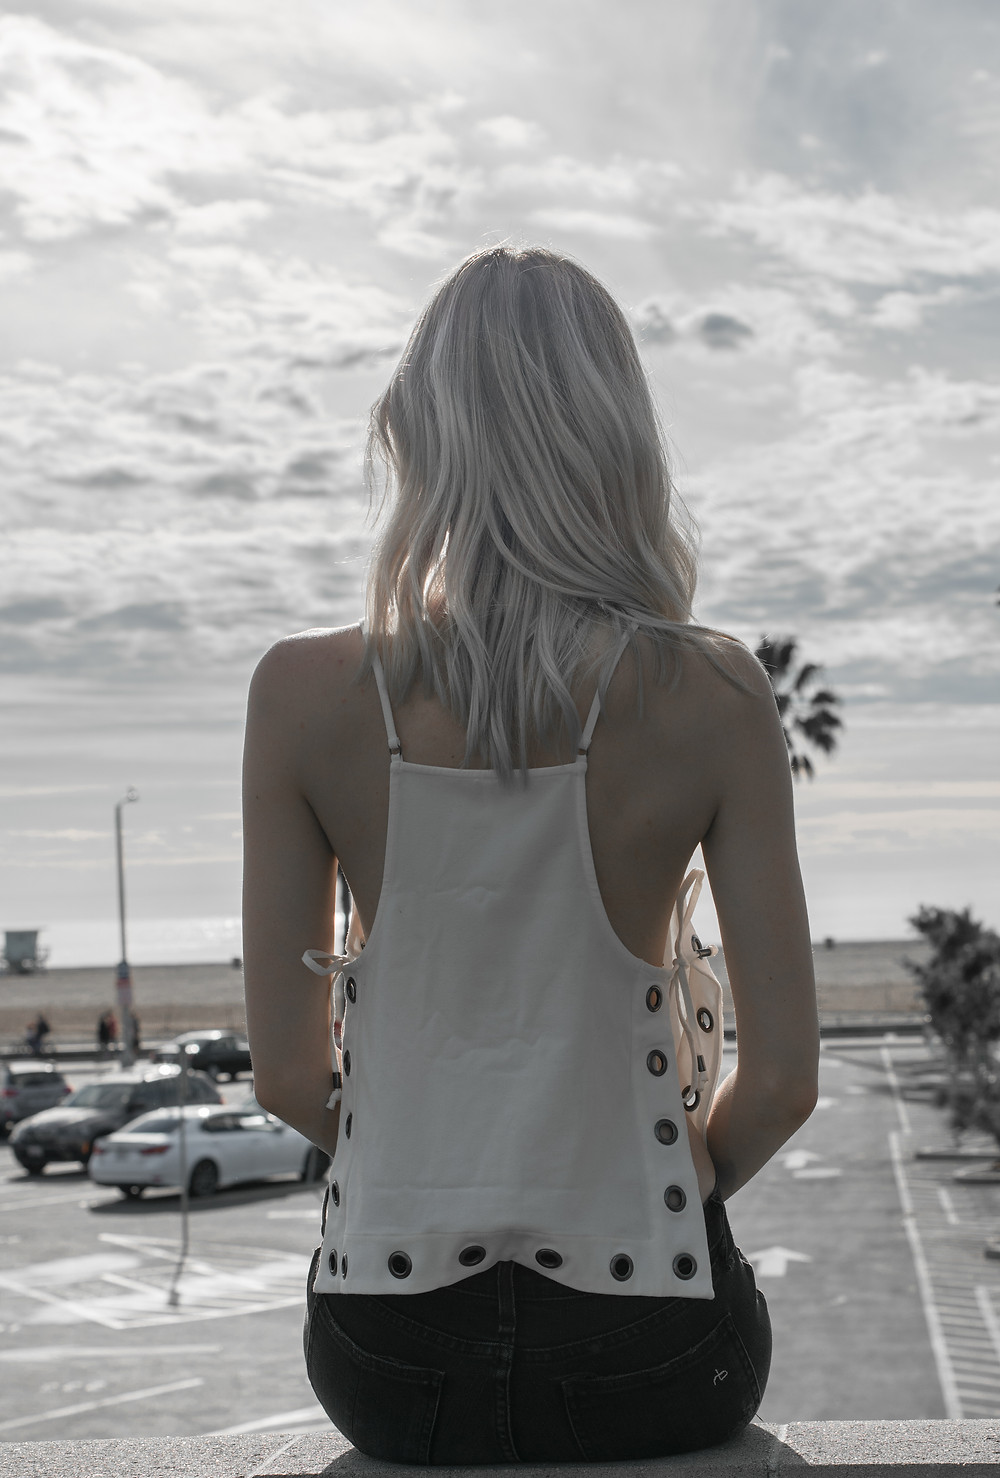 girl looking out at the ocean